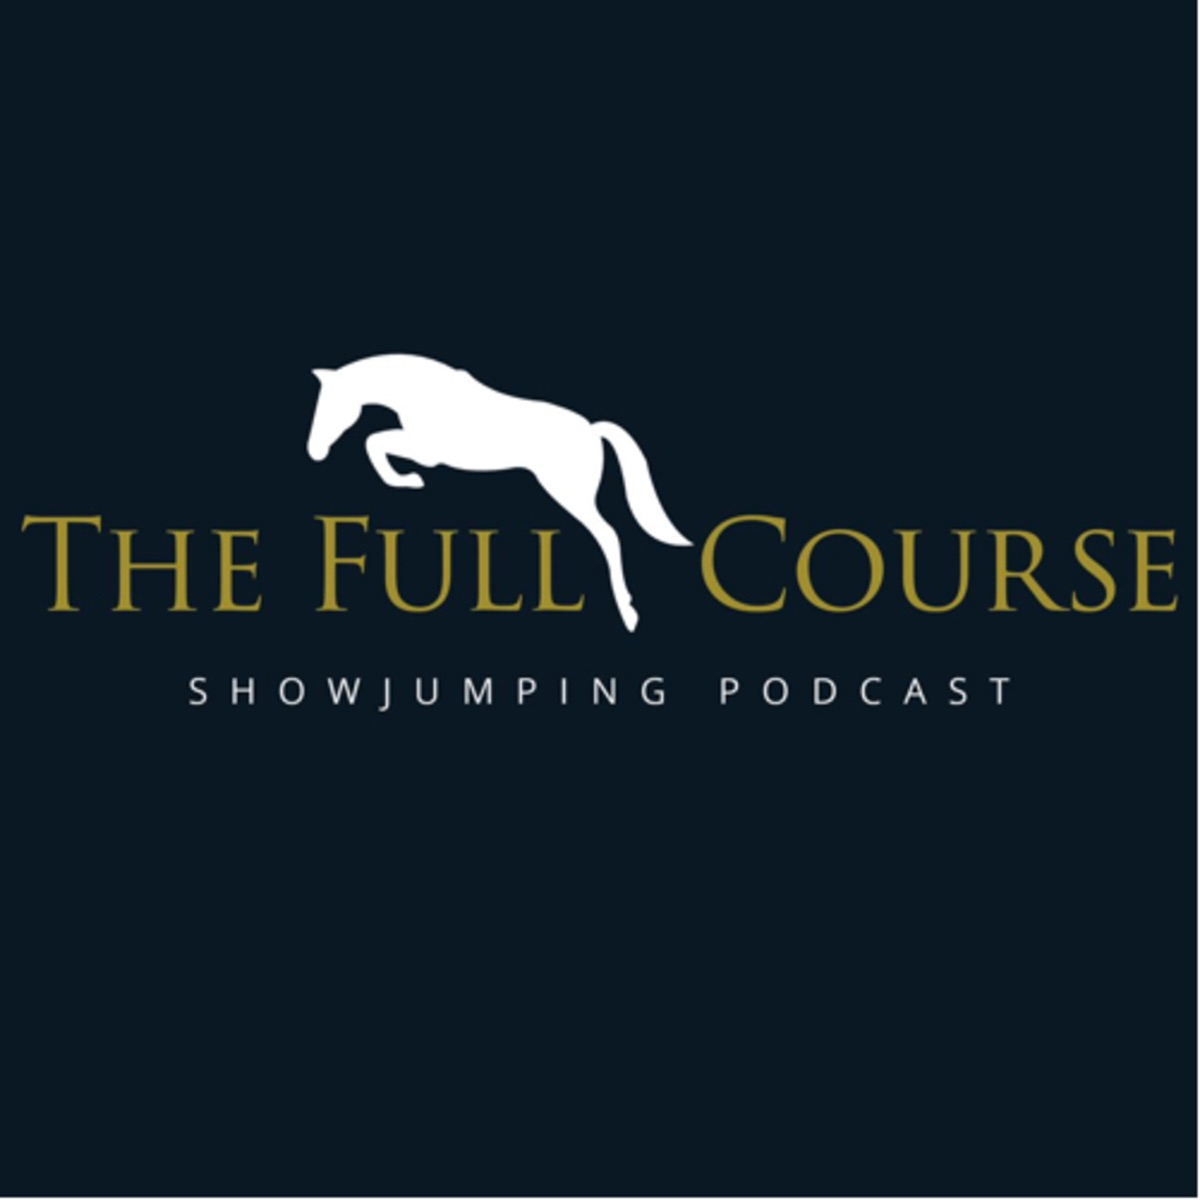 The Full Course Showjumping Podcast